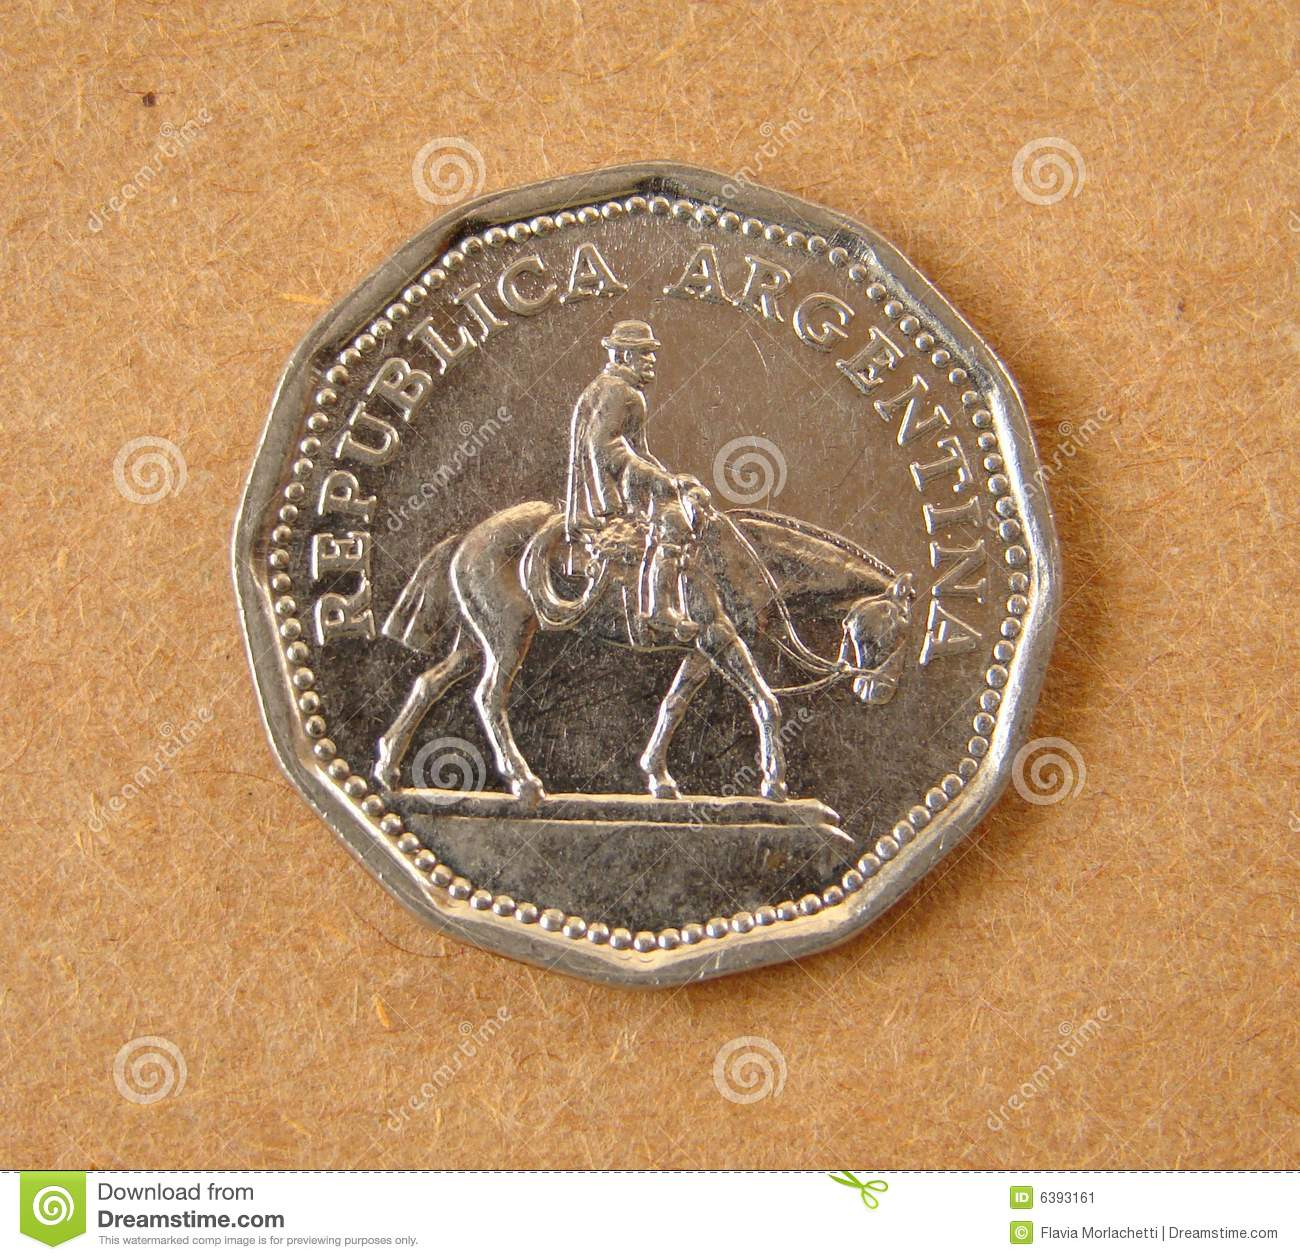 old coins stock image - photo #35